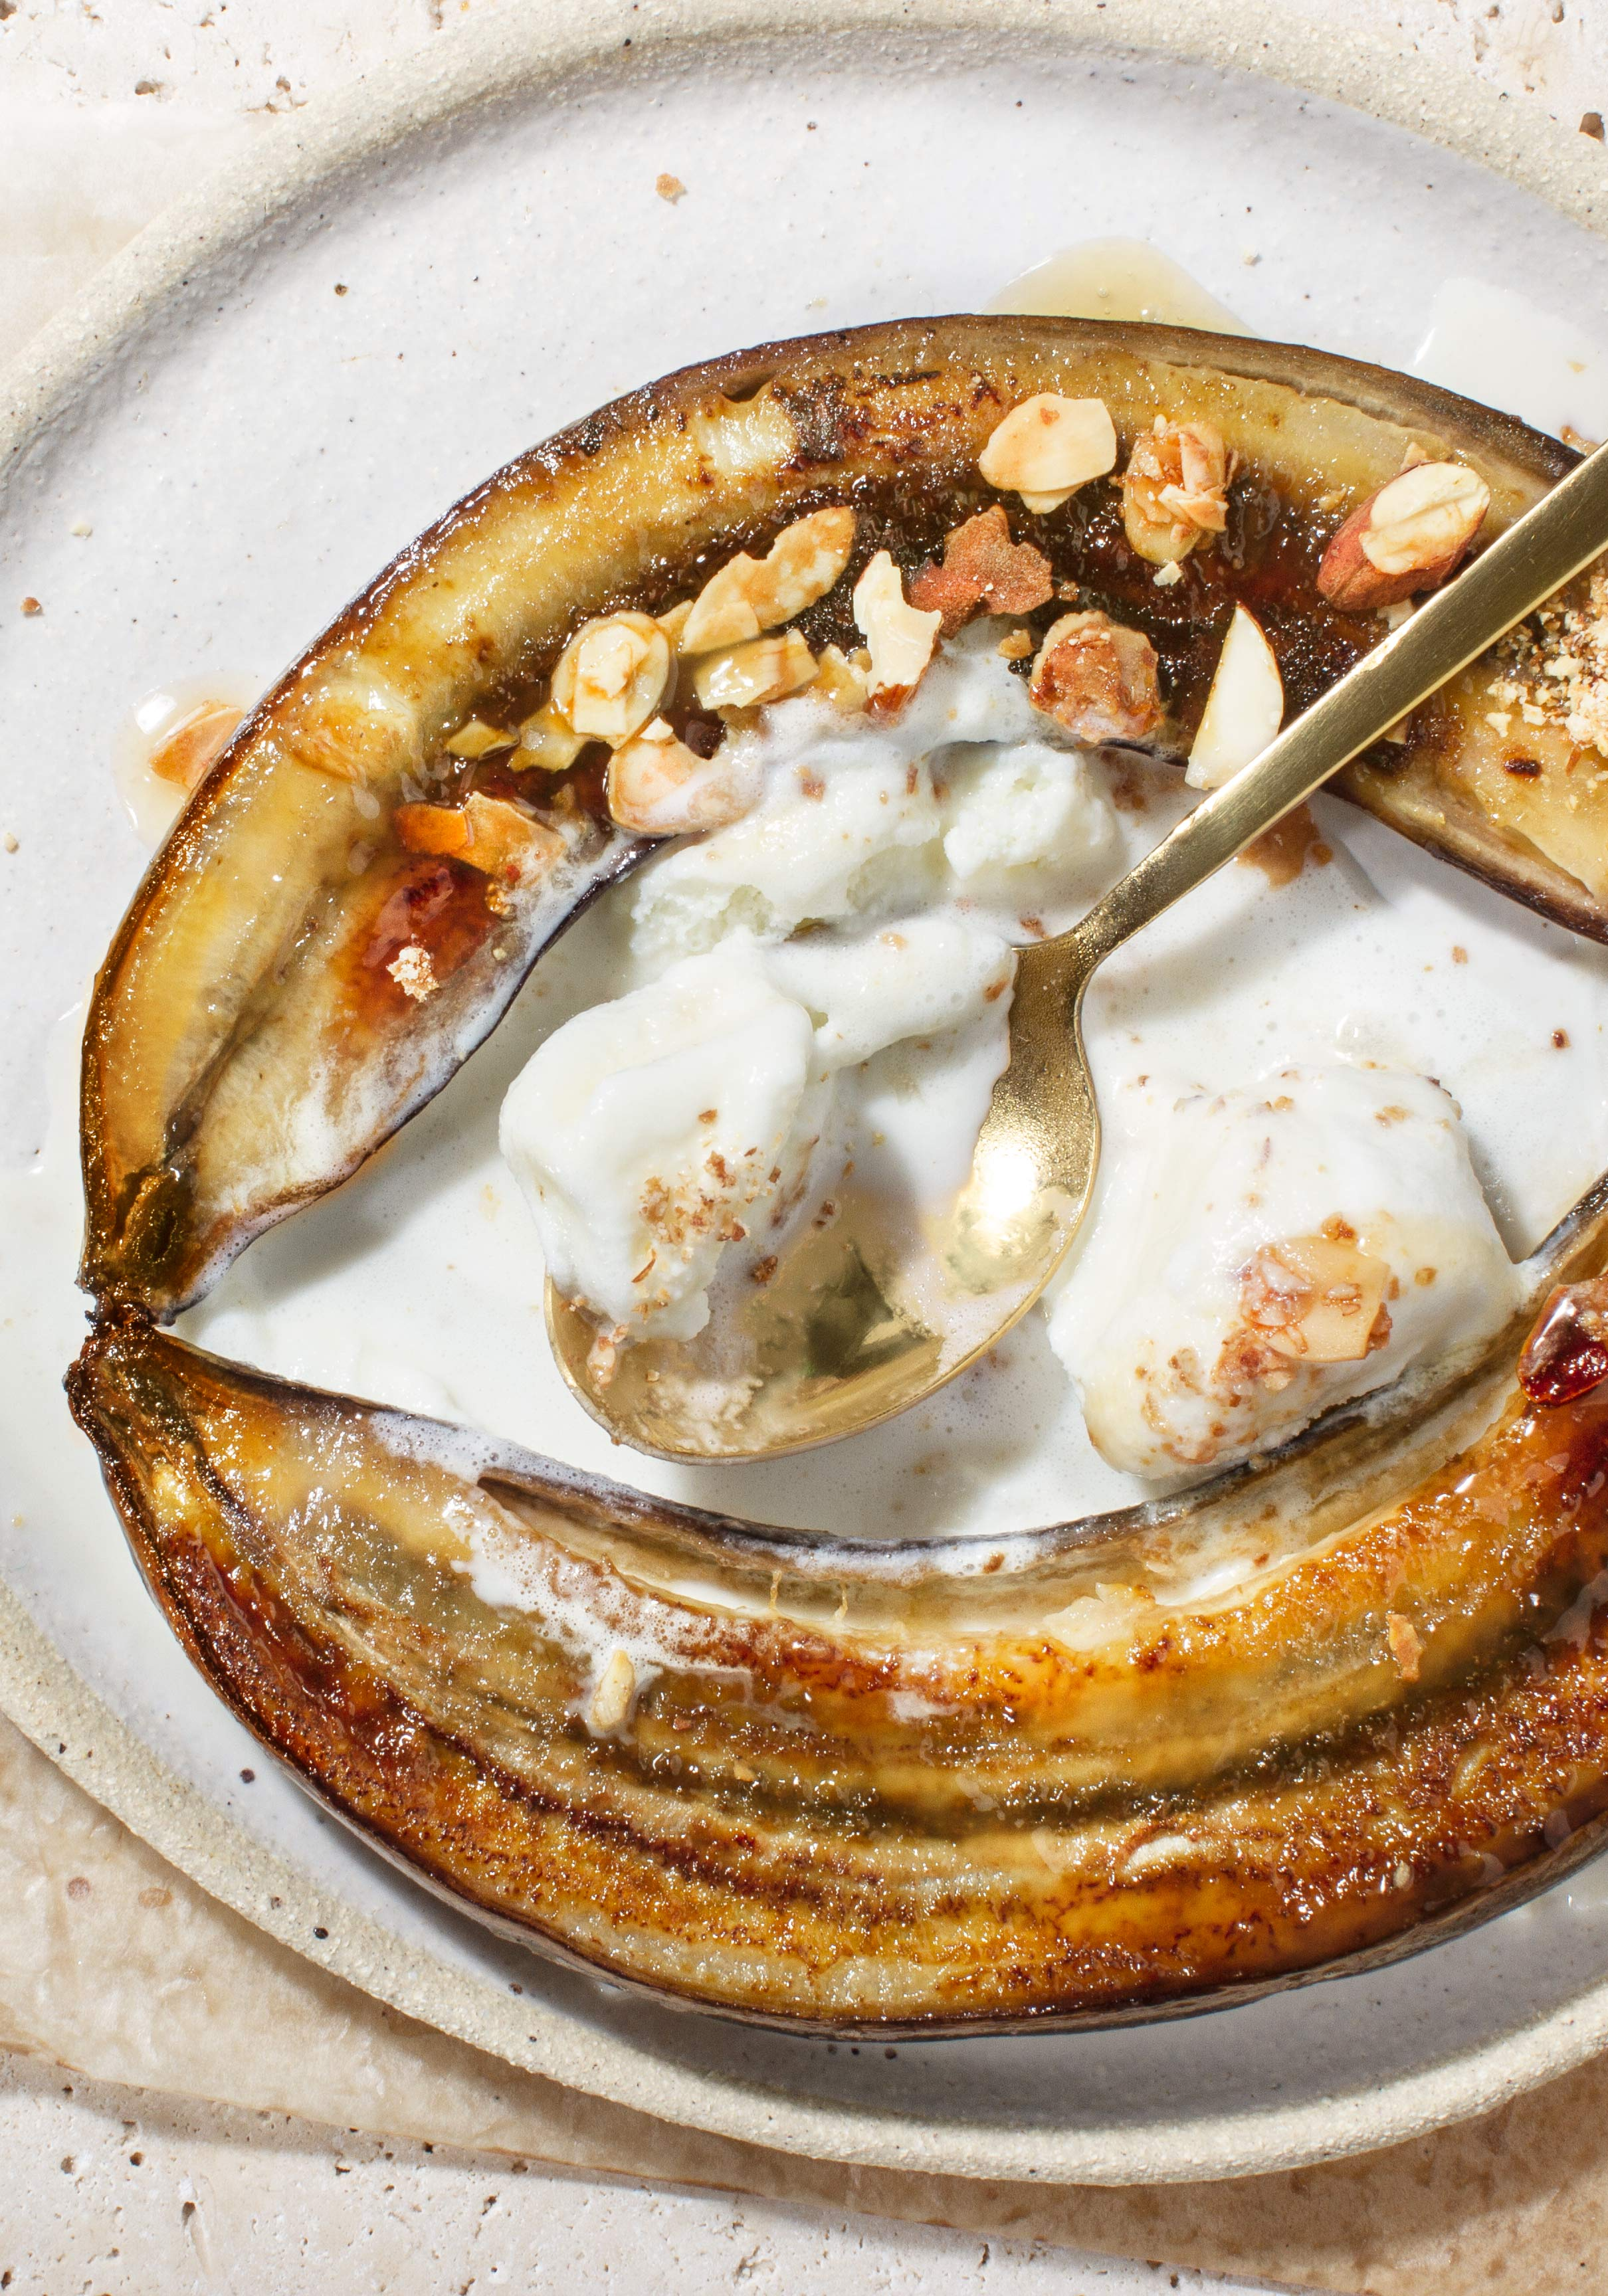 recipe-page-caramelized-banana-spli-with-vanilla-coyo